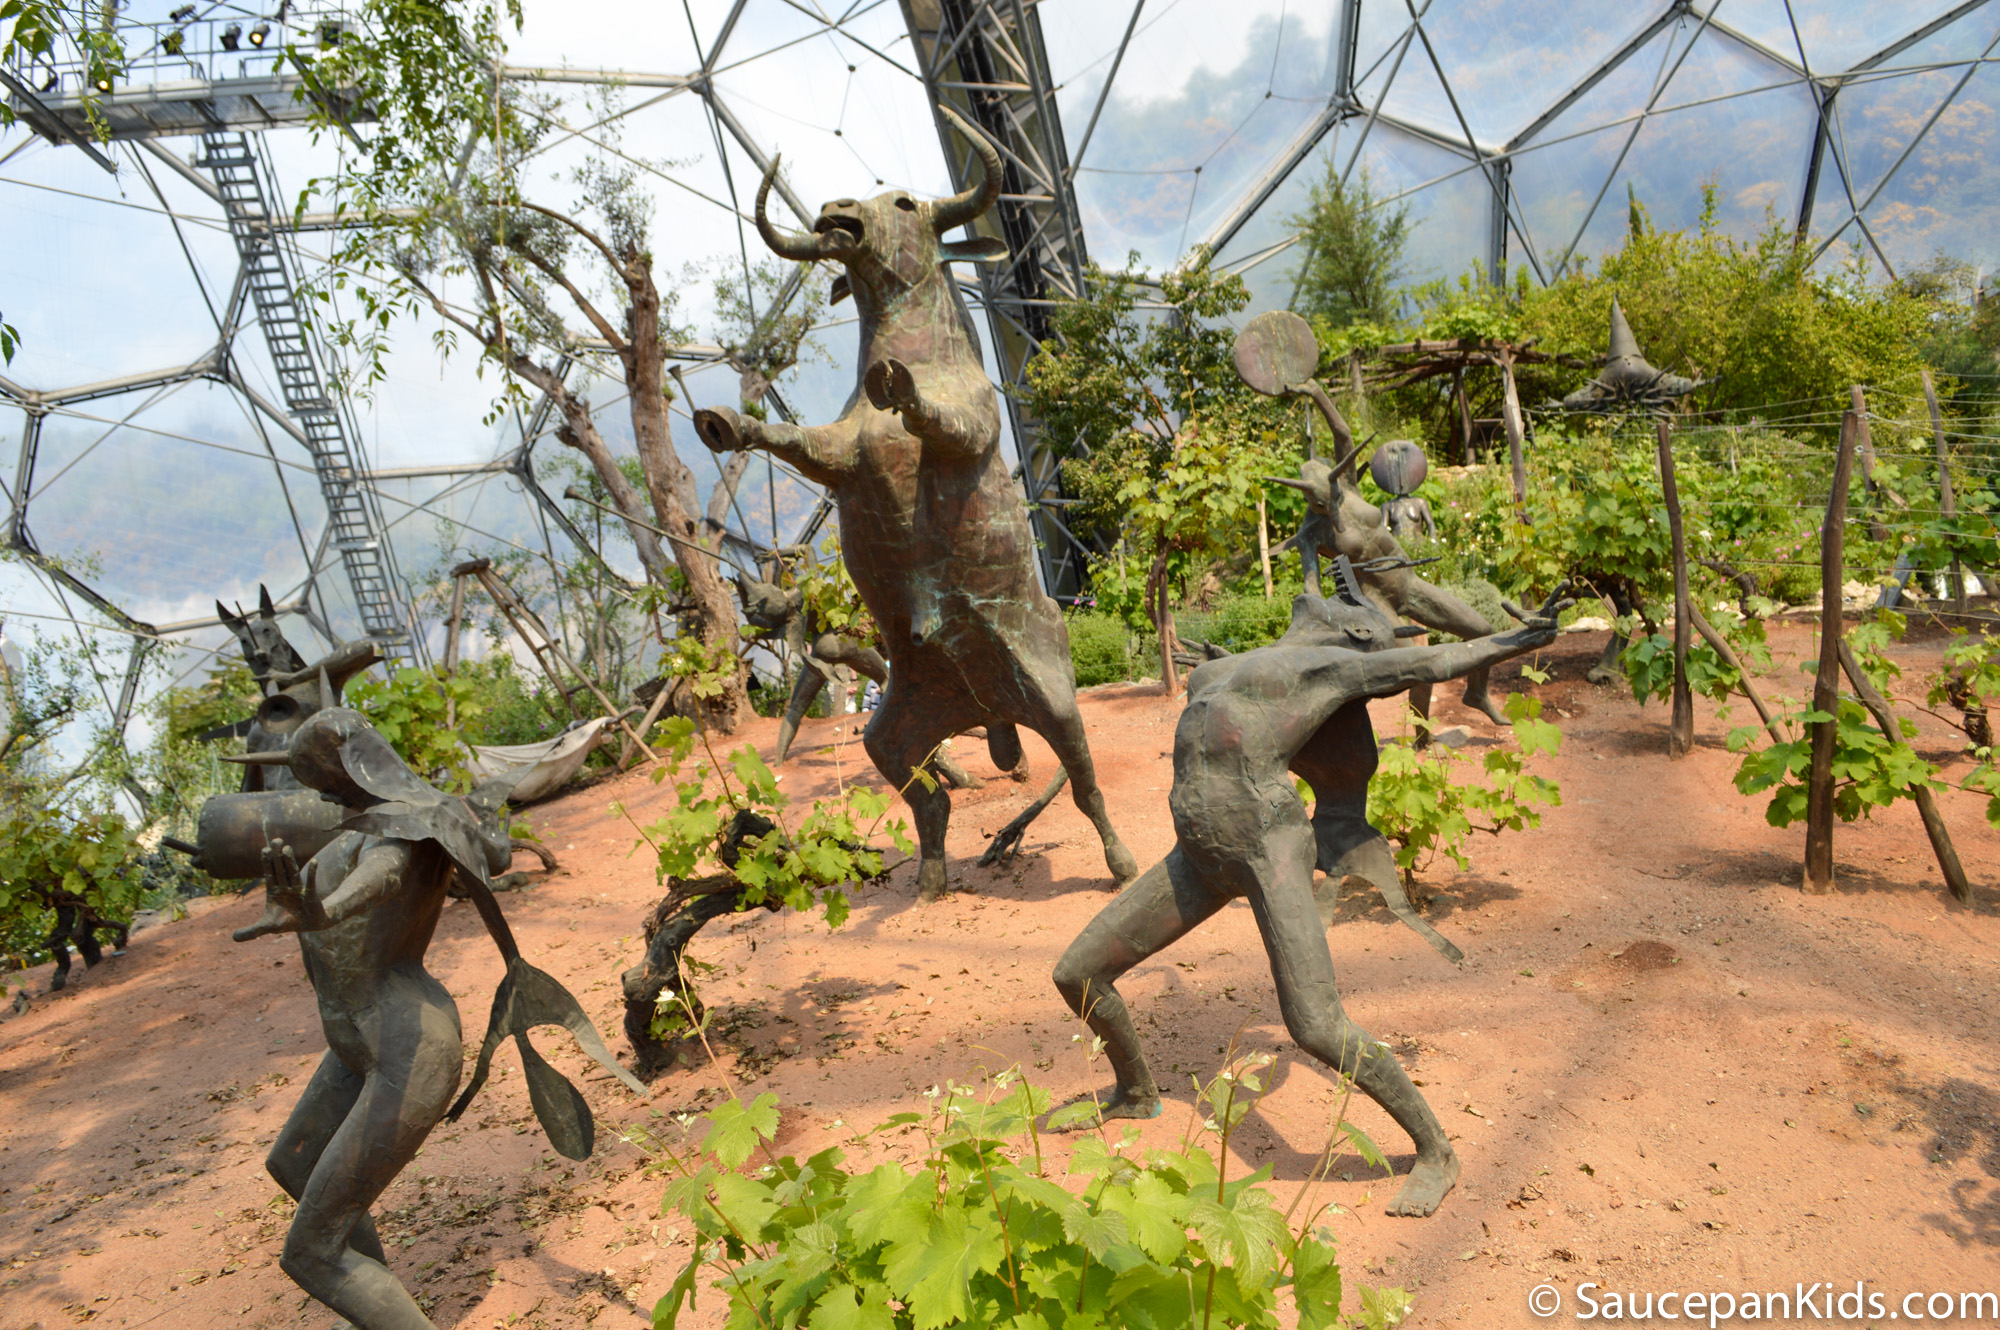 Saucepan Kids visit and review Eden Project Cornwall - The Mediterranean Biome Statues